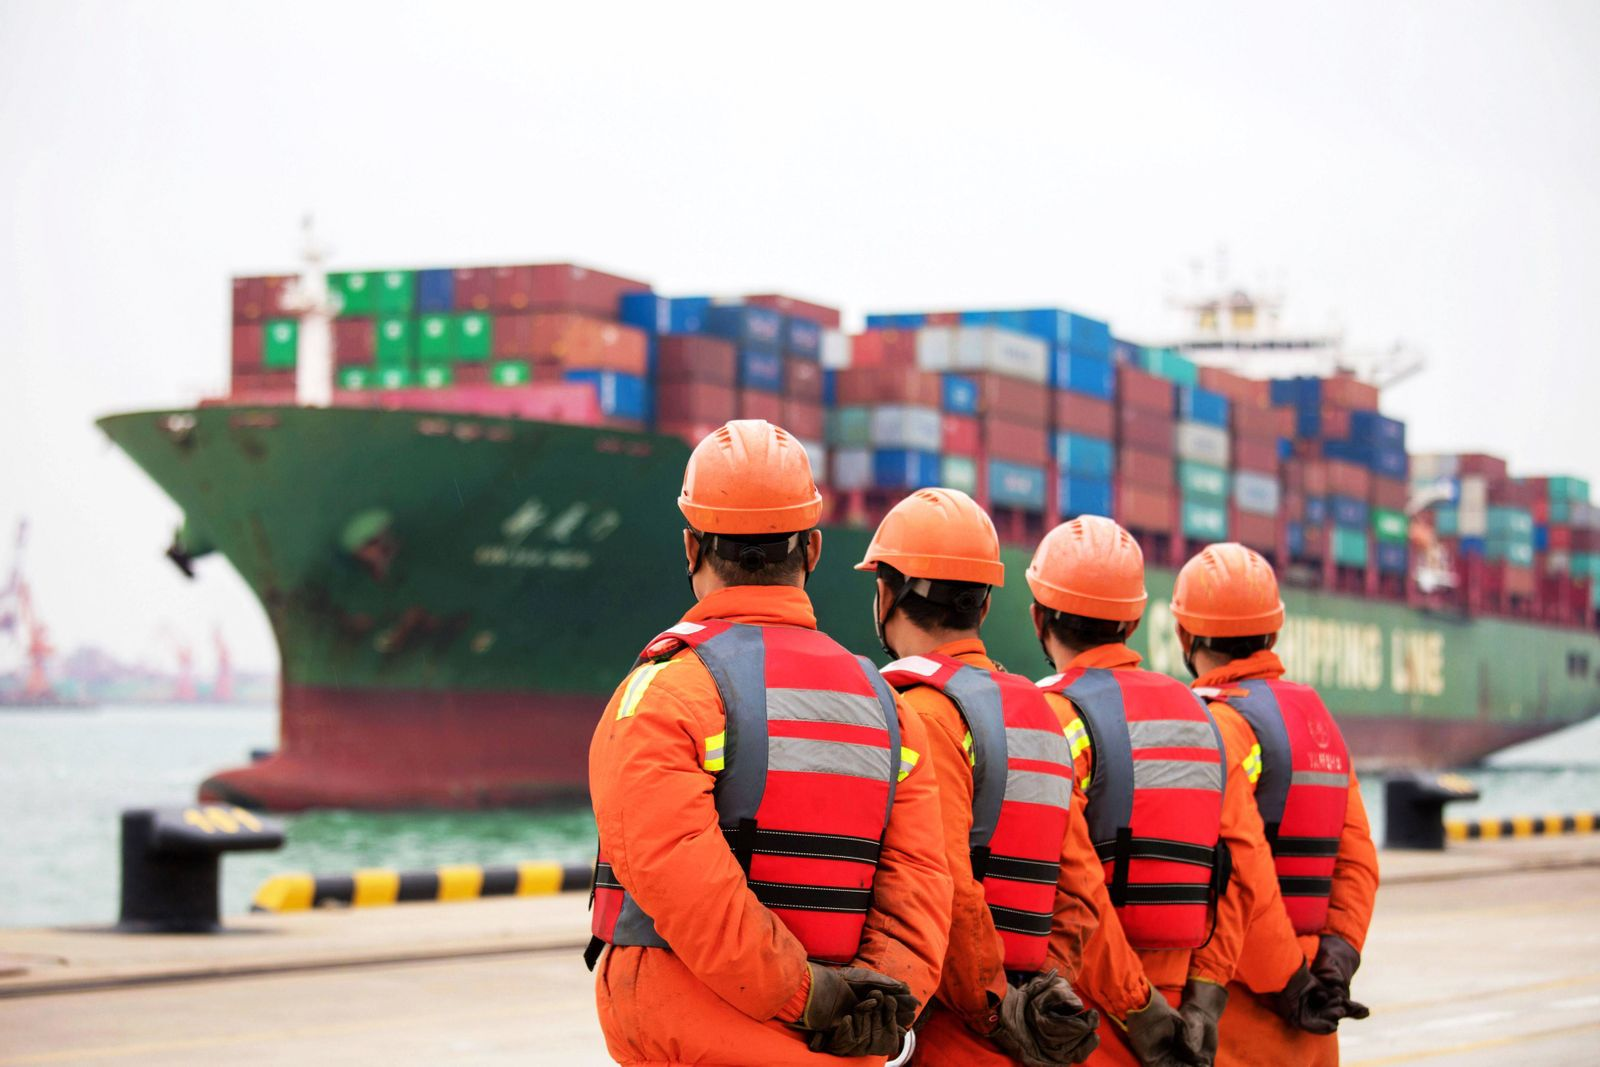 QINGDAO, CHINA - NOVEMBER 08: Workers wait to unload shipping containers at Qingdao Port on November 8, 2018 in Qingdao